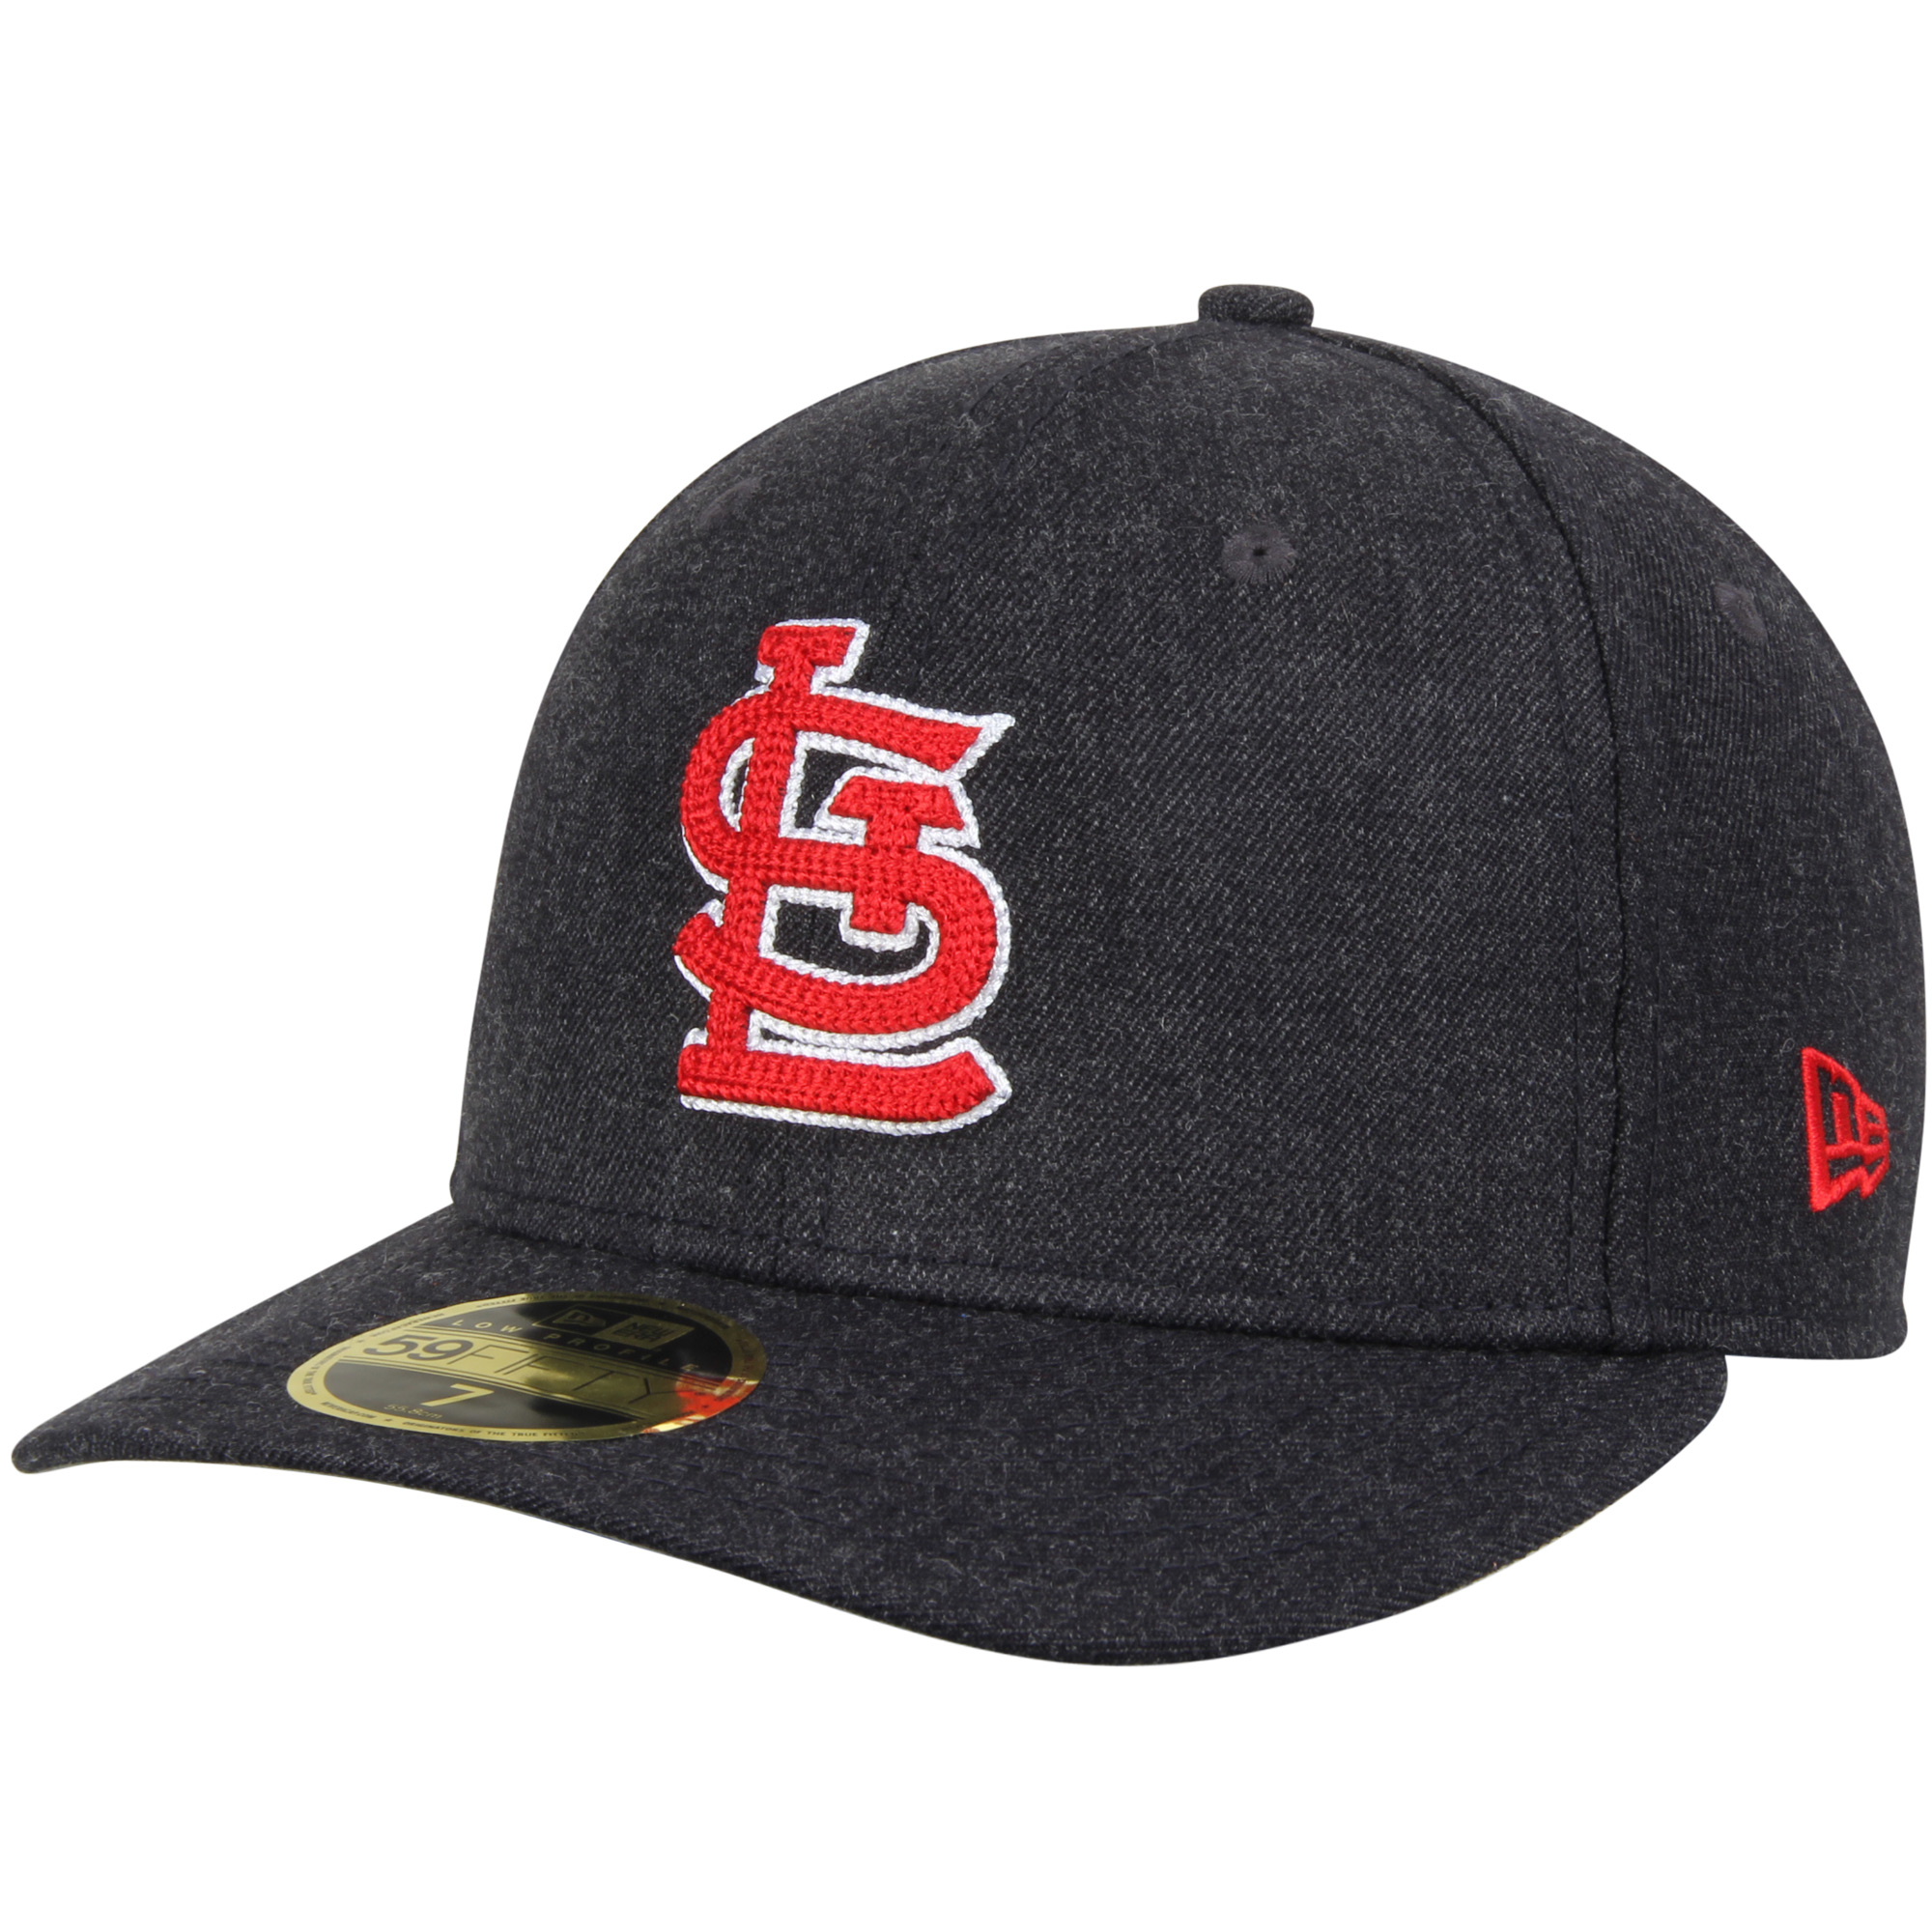 St. Louis Cardinals New Era Crisp Low Profile 59FIFTY Fitted Hat - Heathered Navy